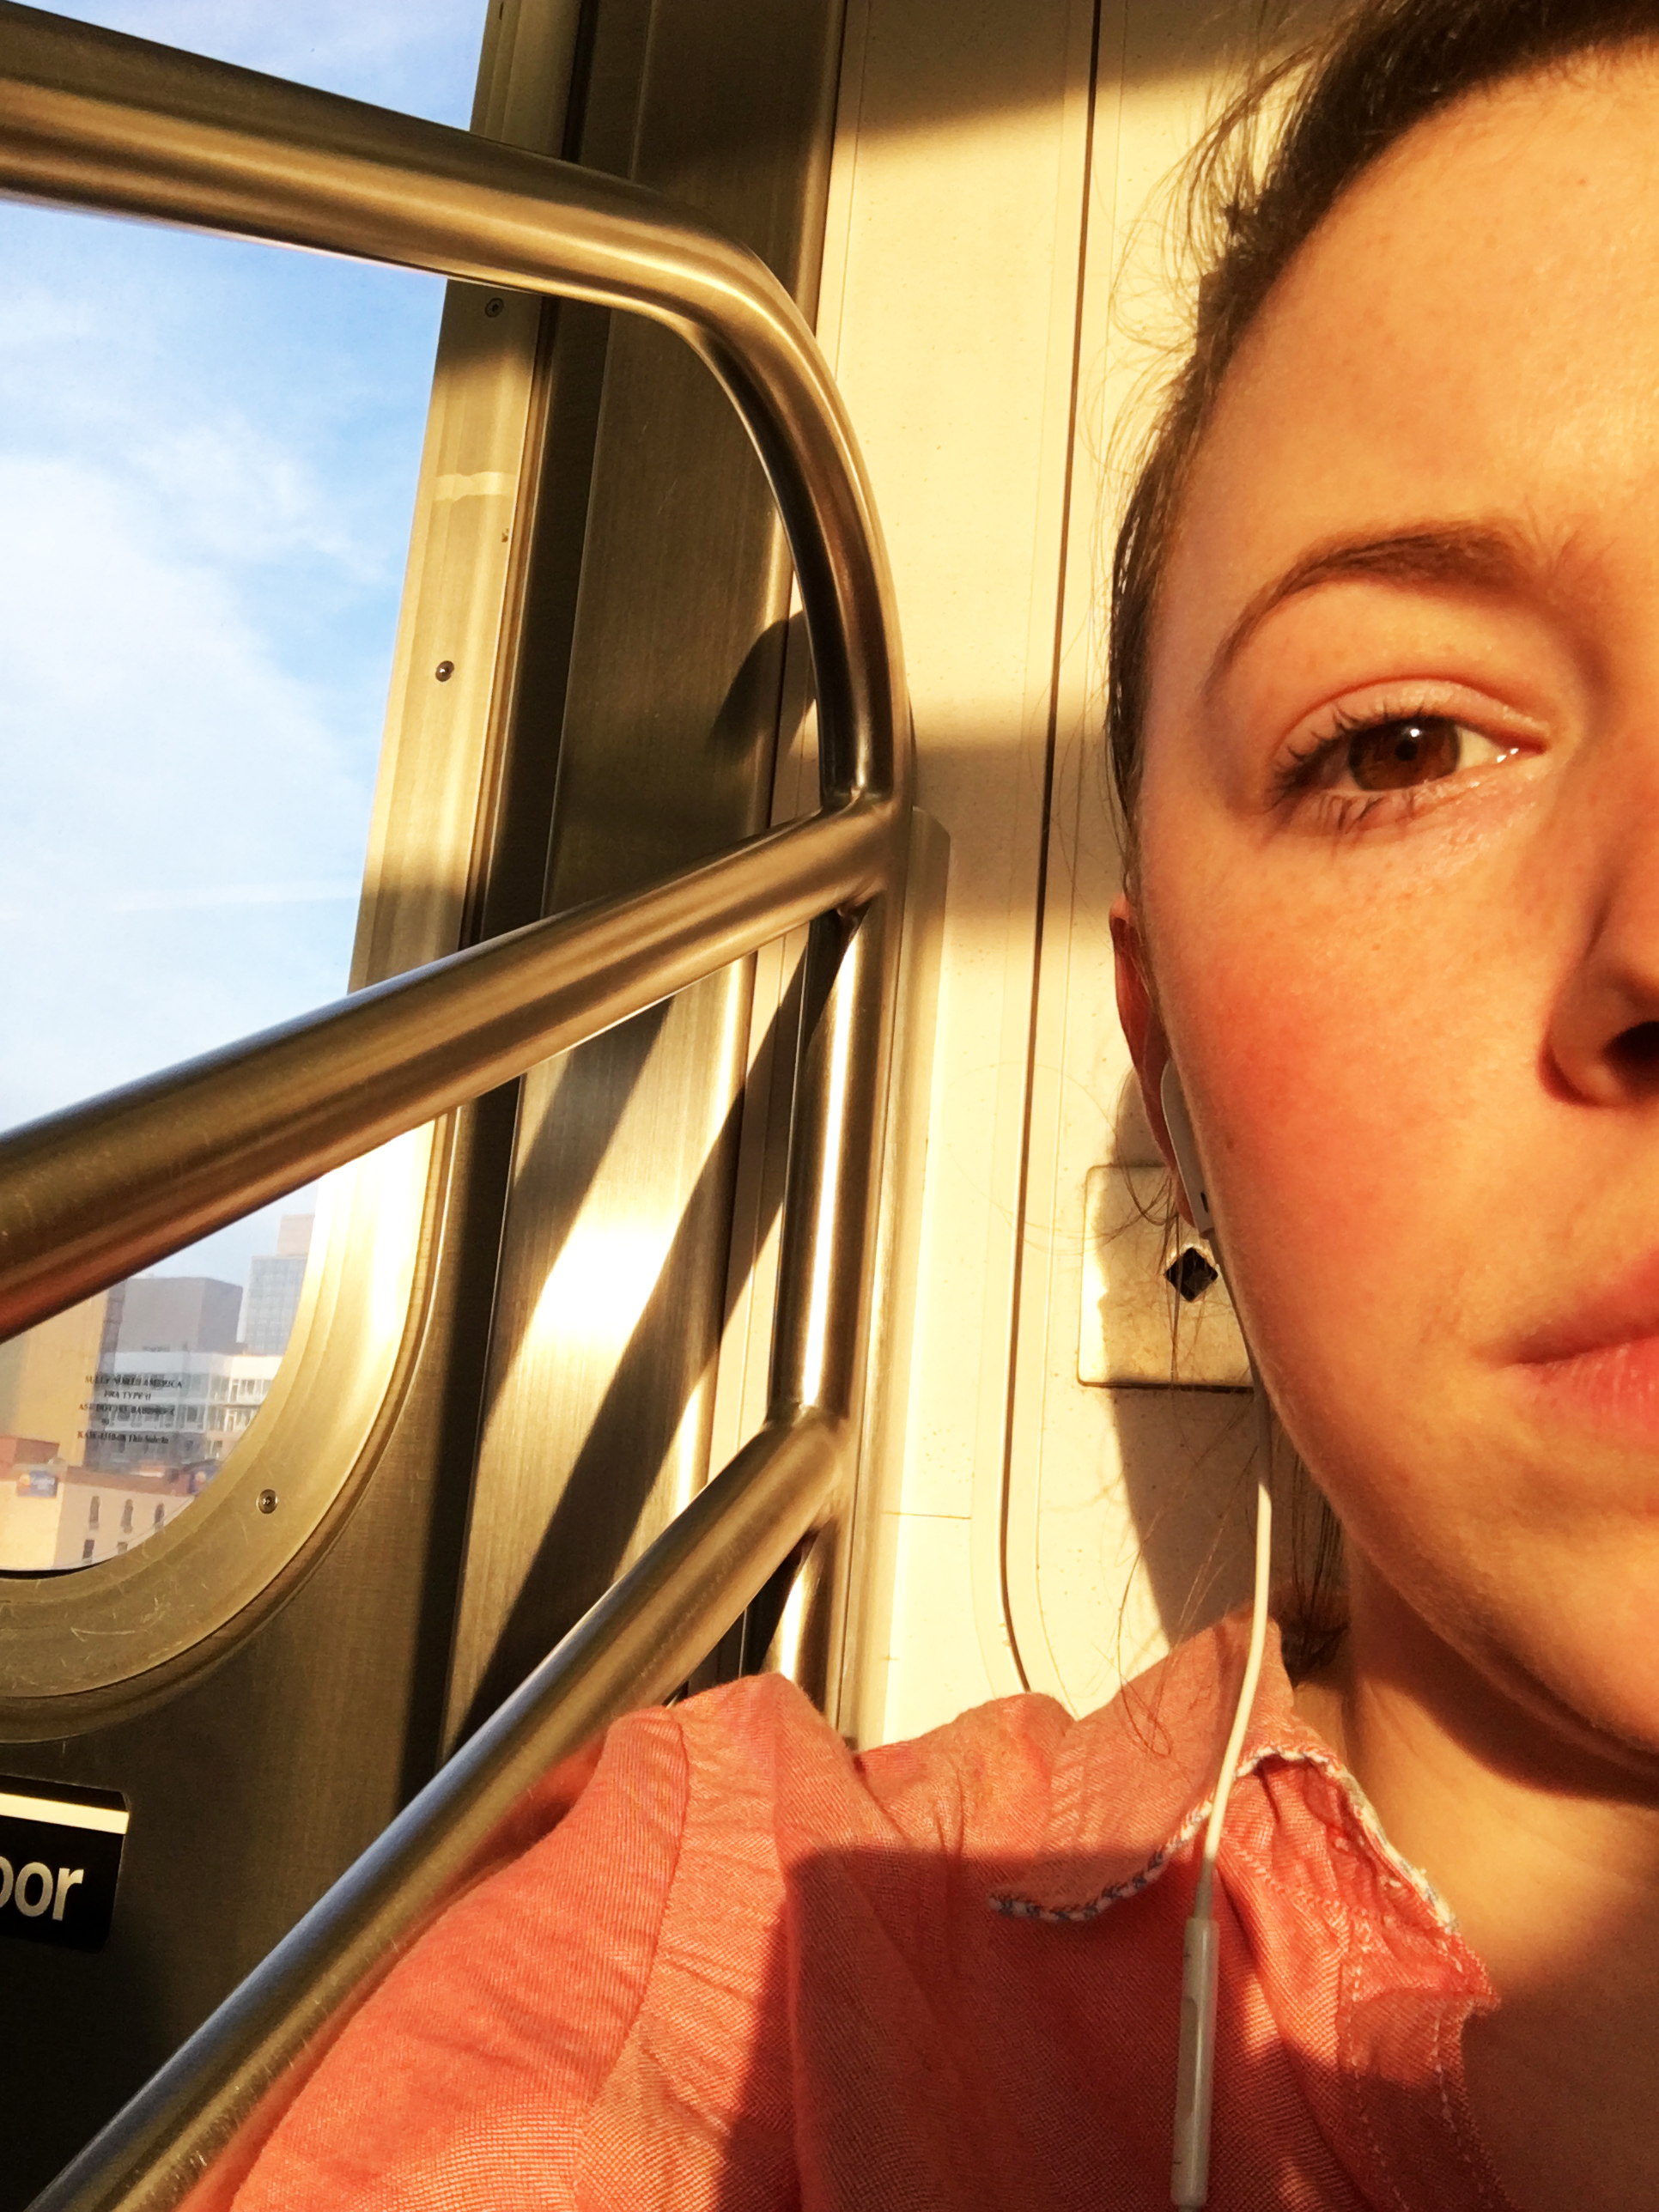 The sun is still high and bright at the time I'm commuting home and it's kind of glorious - although I wouldn't mind if it was sunset time either